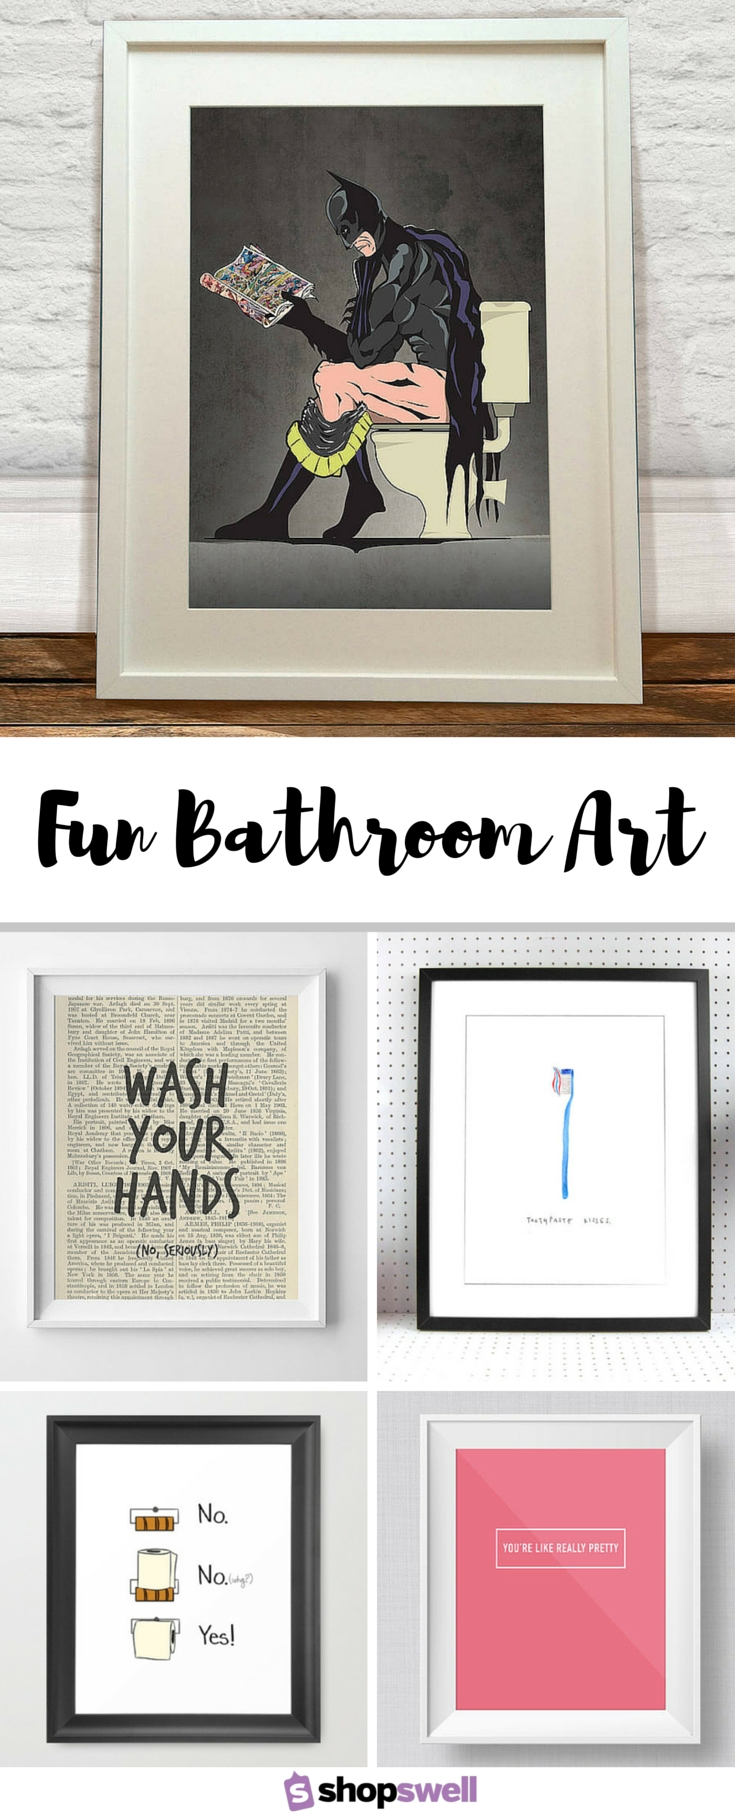 Fun Bathroom Art | Home Sweet Home (View 6 of 20)